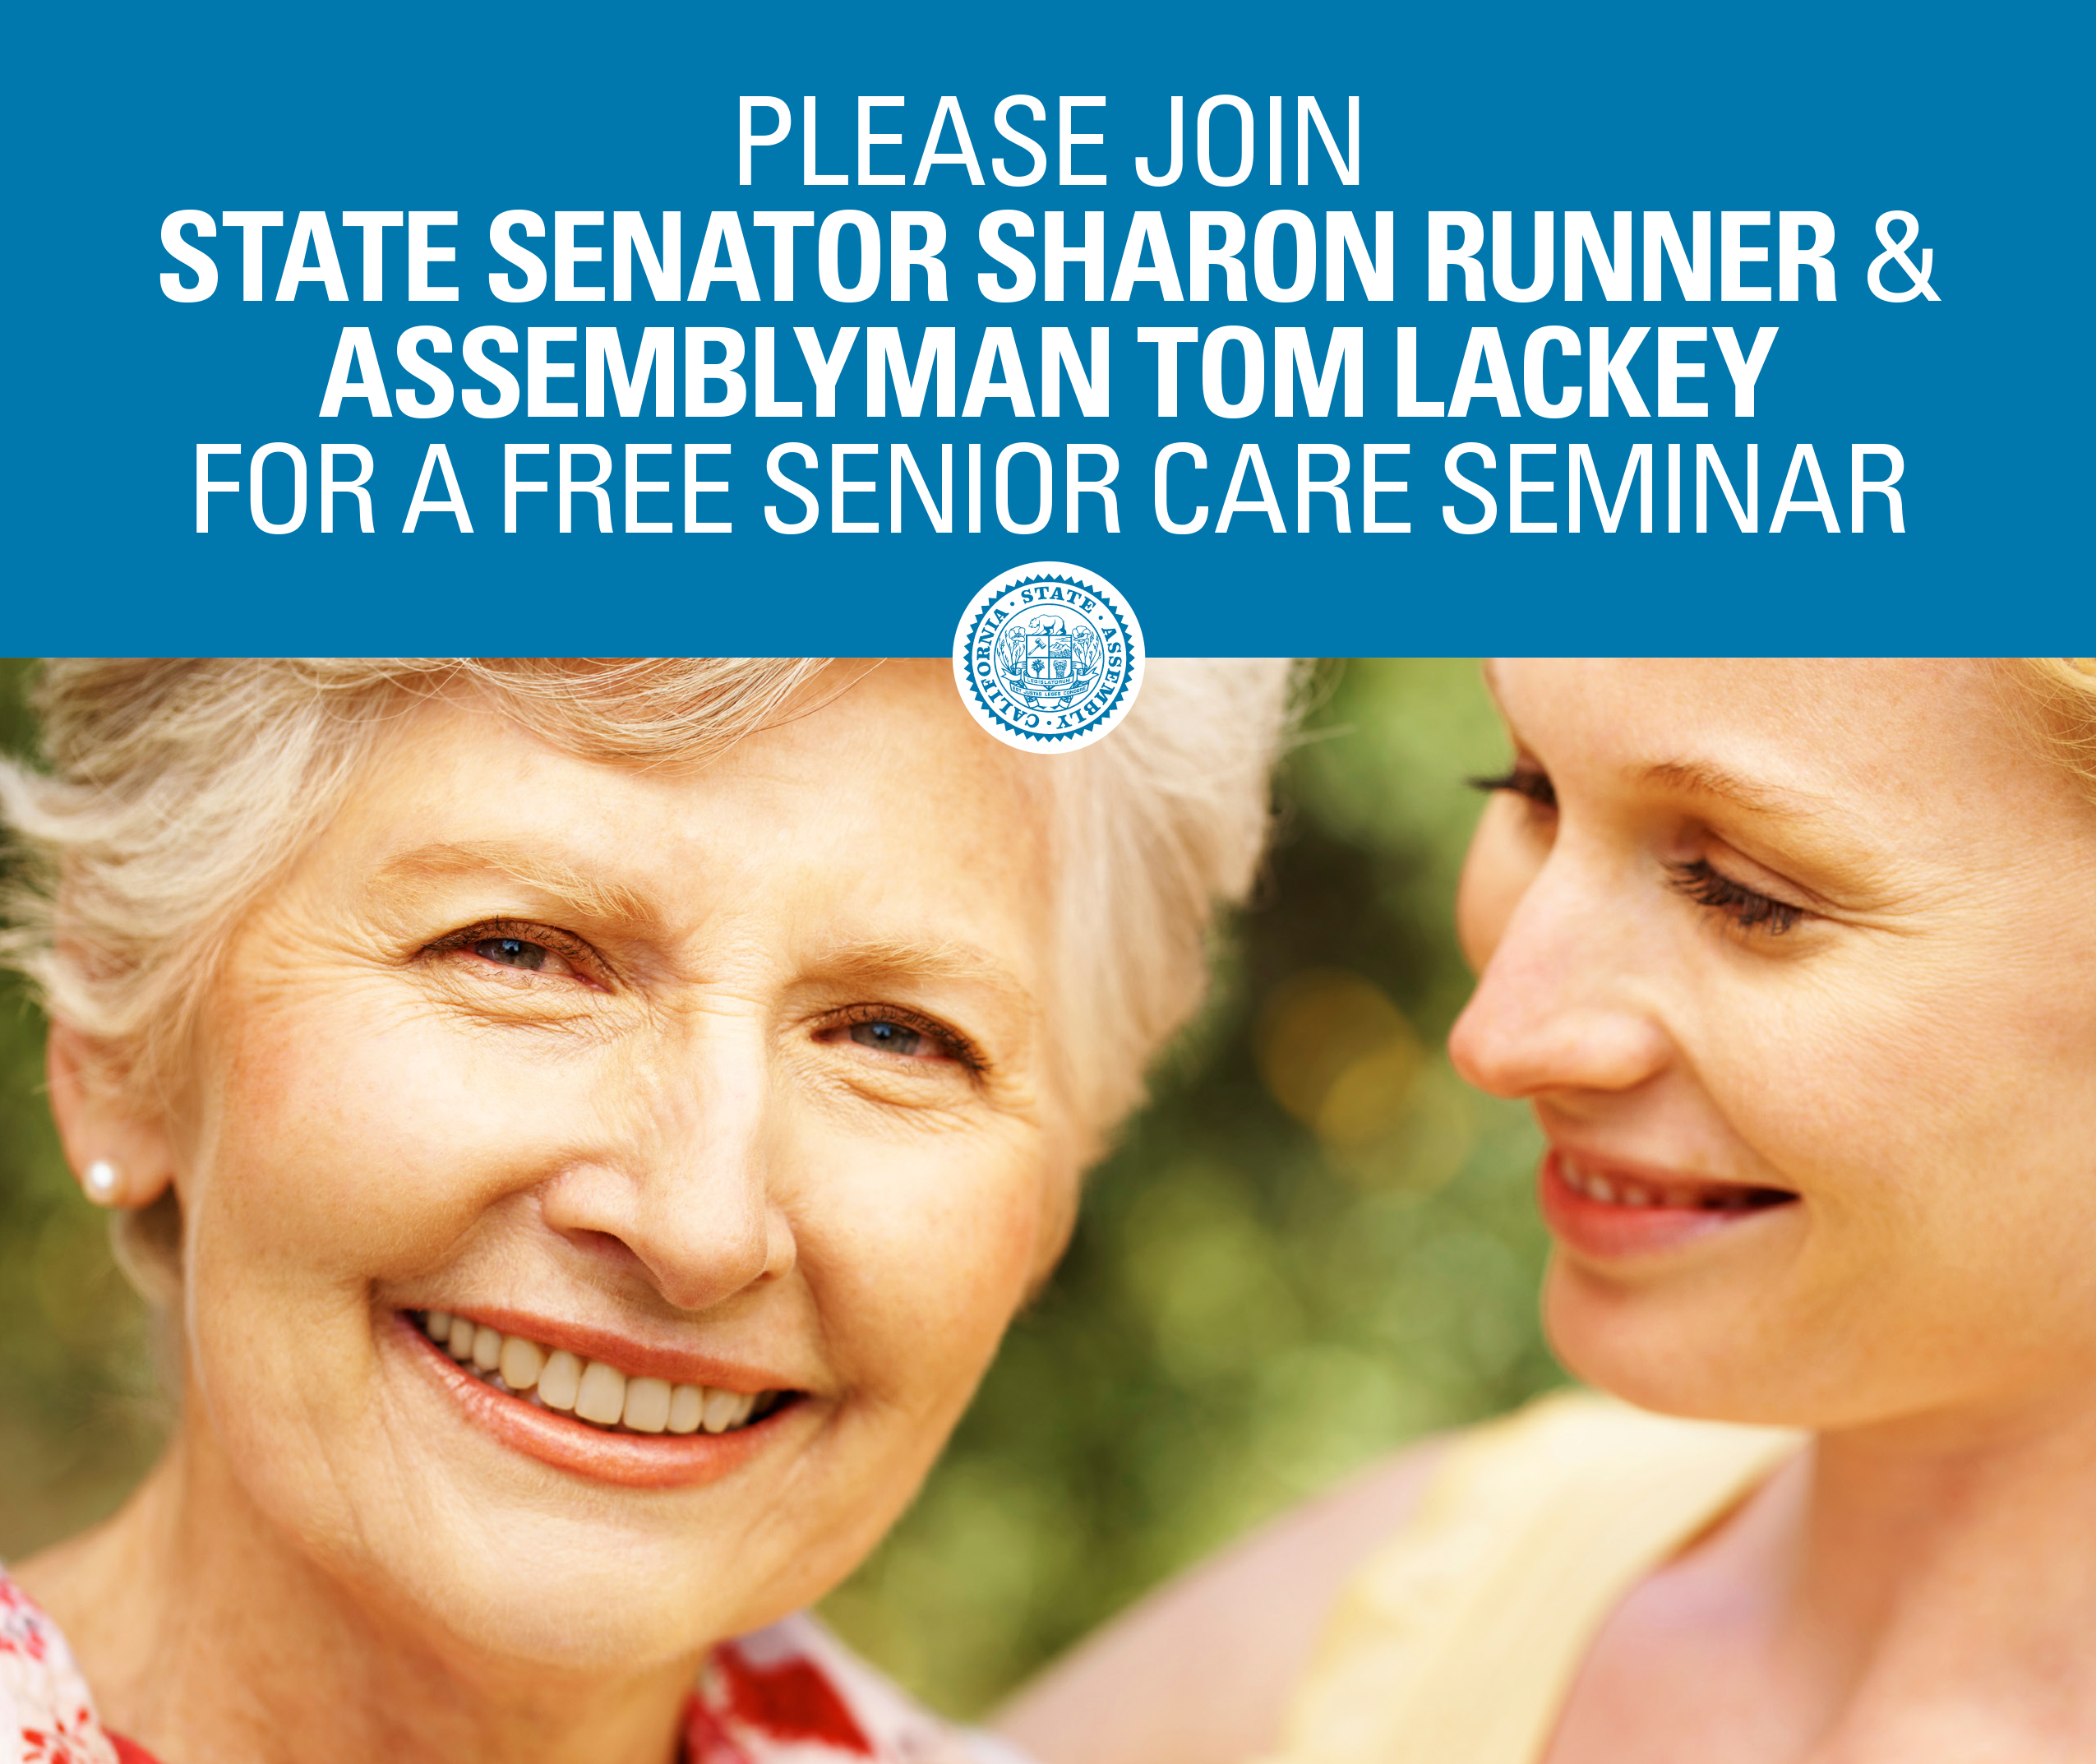 Senior Care Seminar Flyer